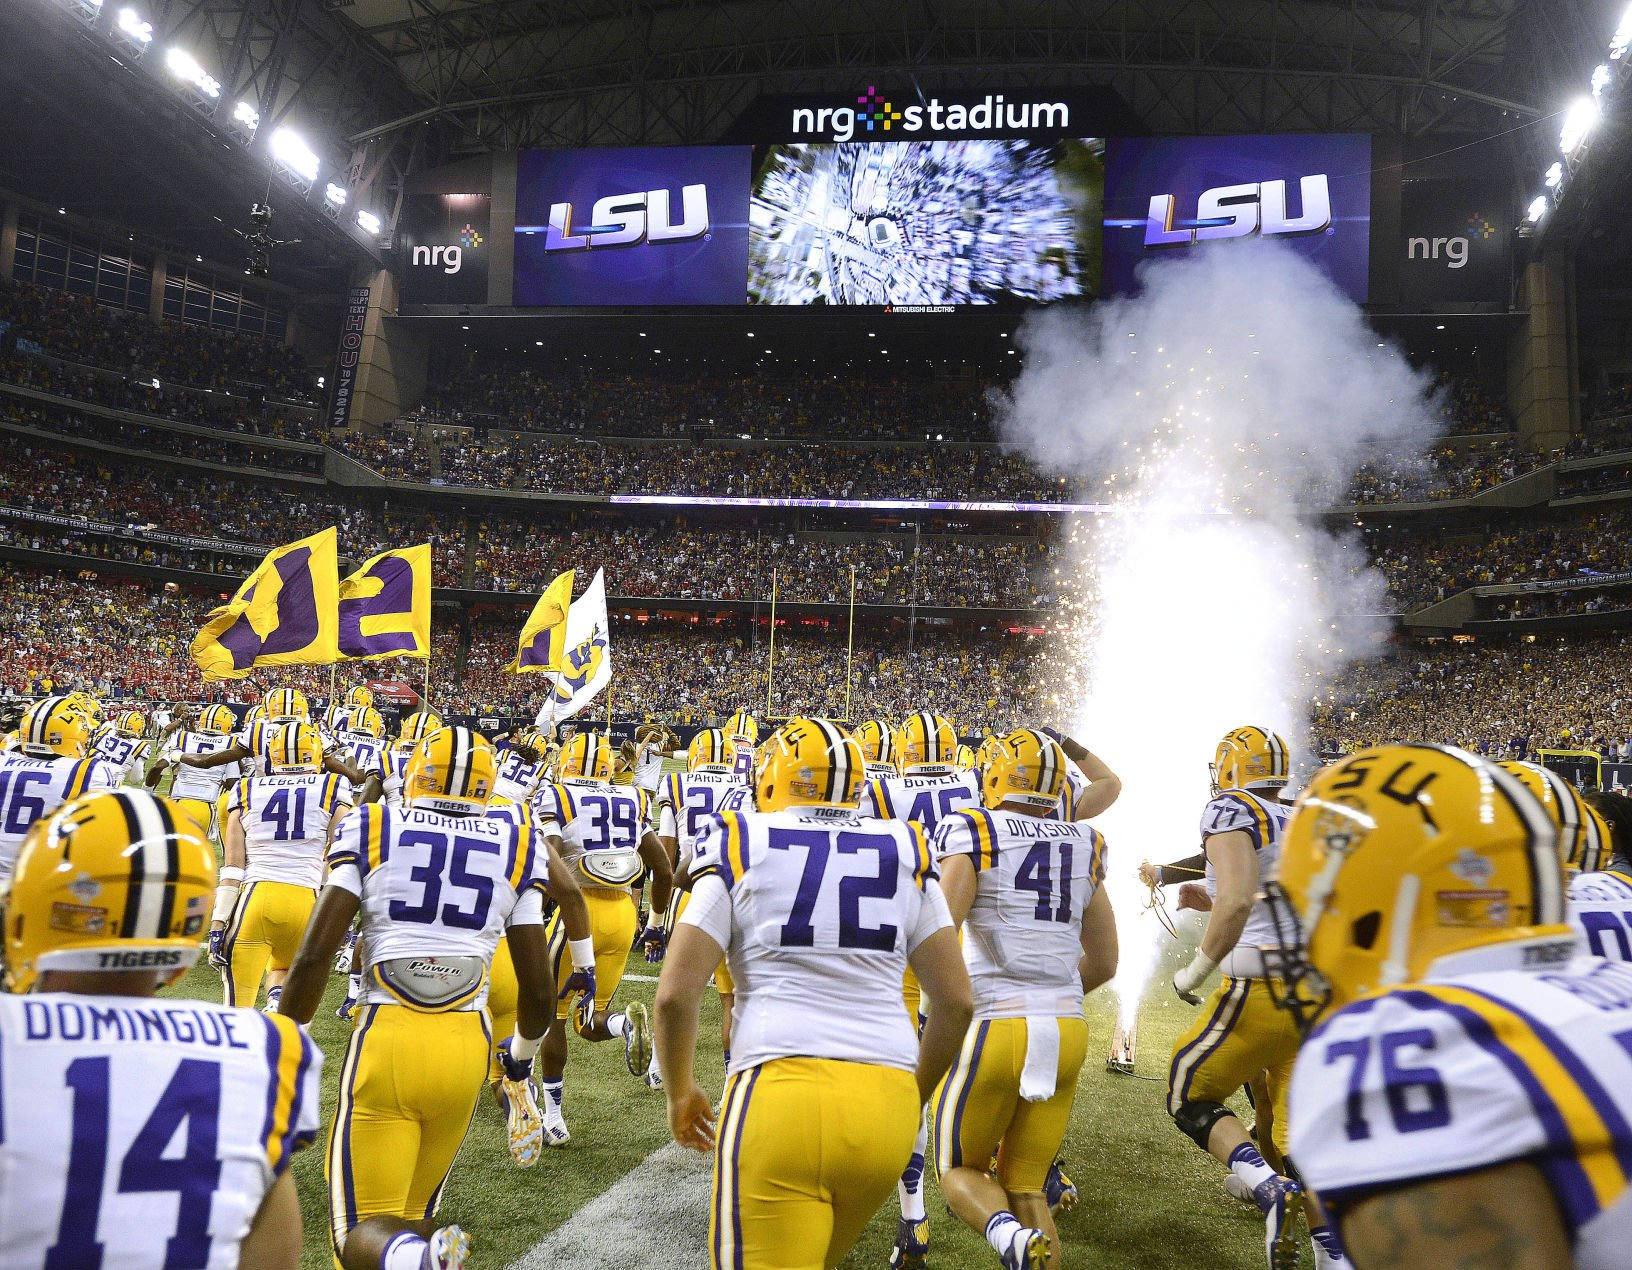 Superdome officials offer up venue for Houston LSU, BYU game